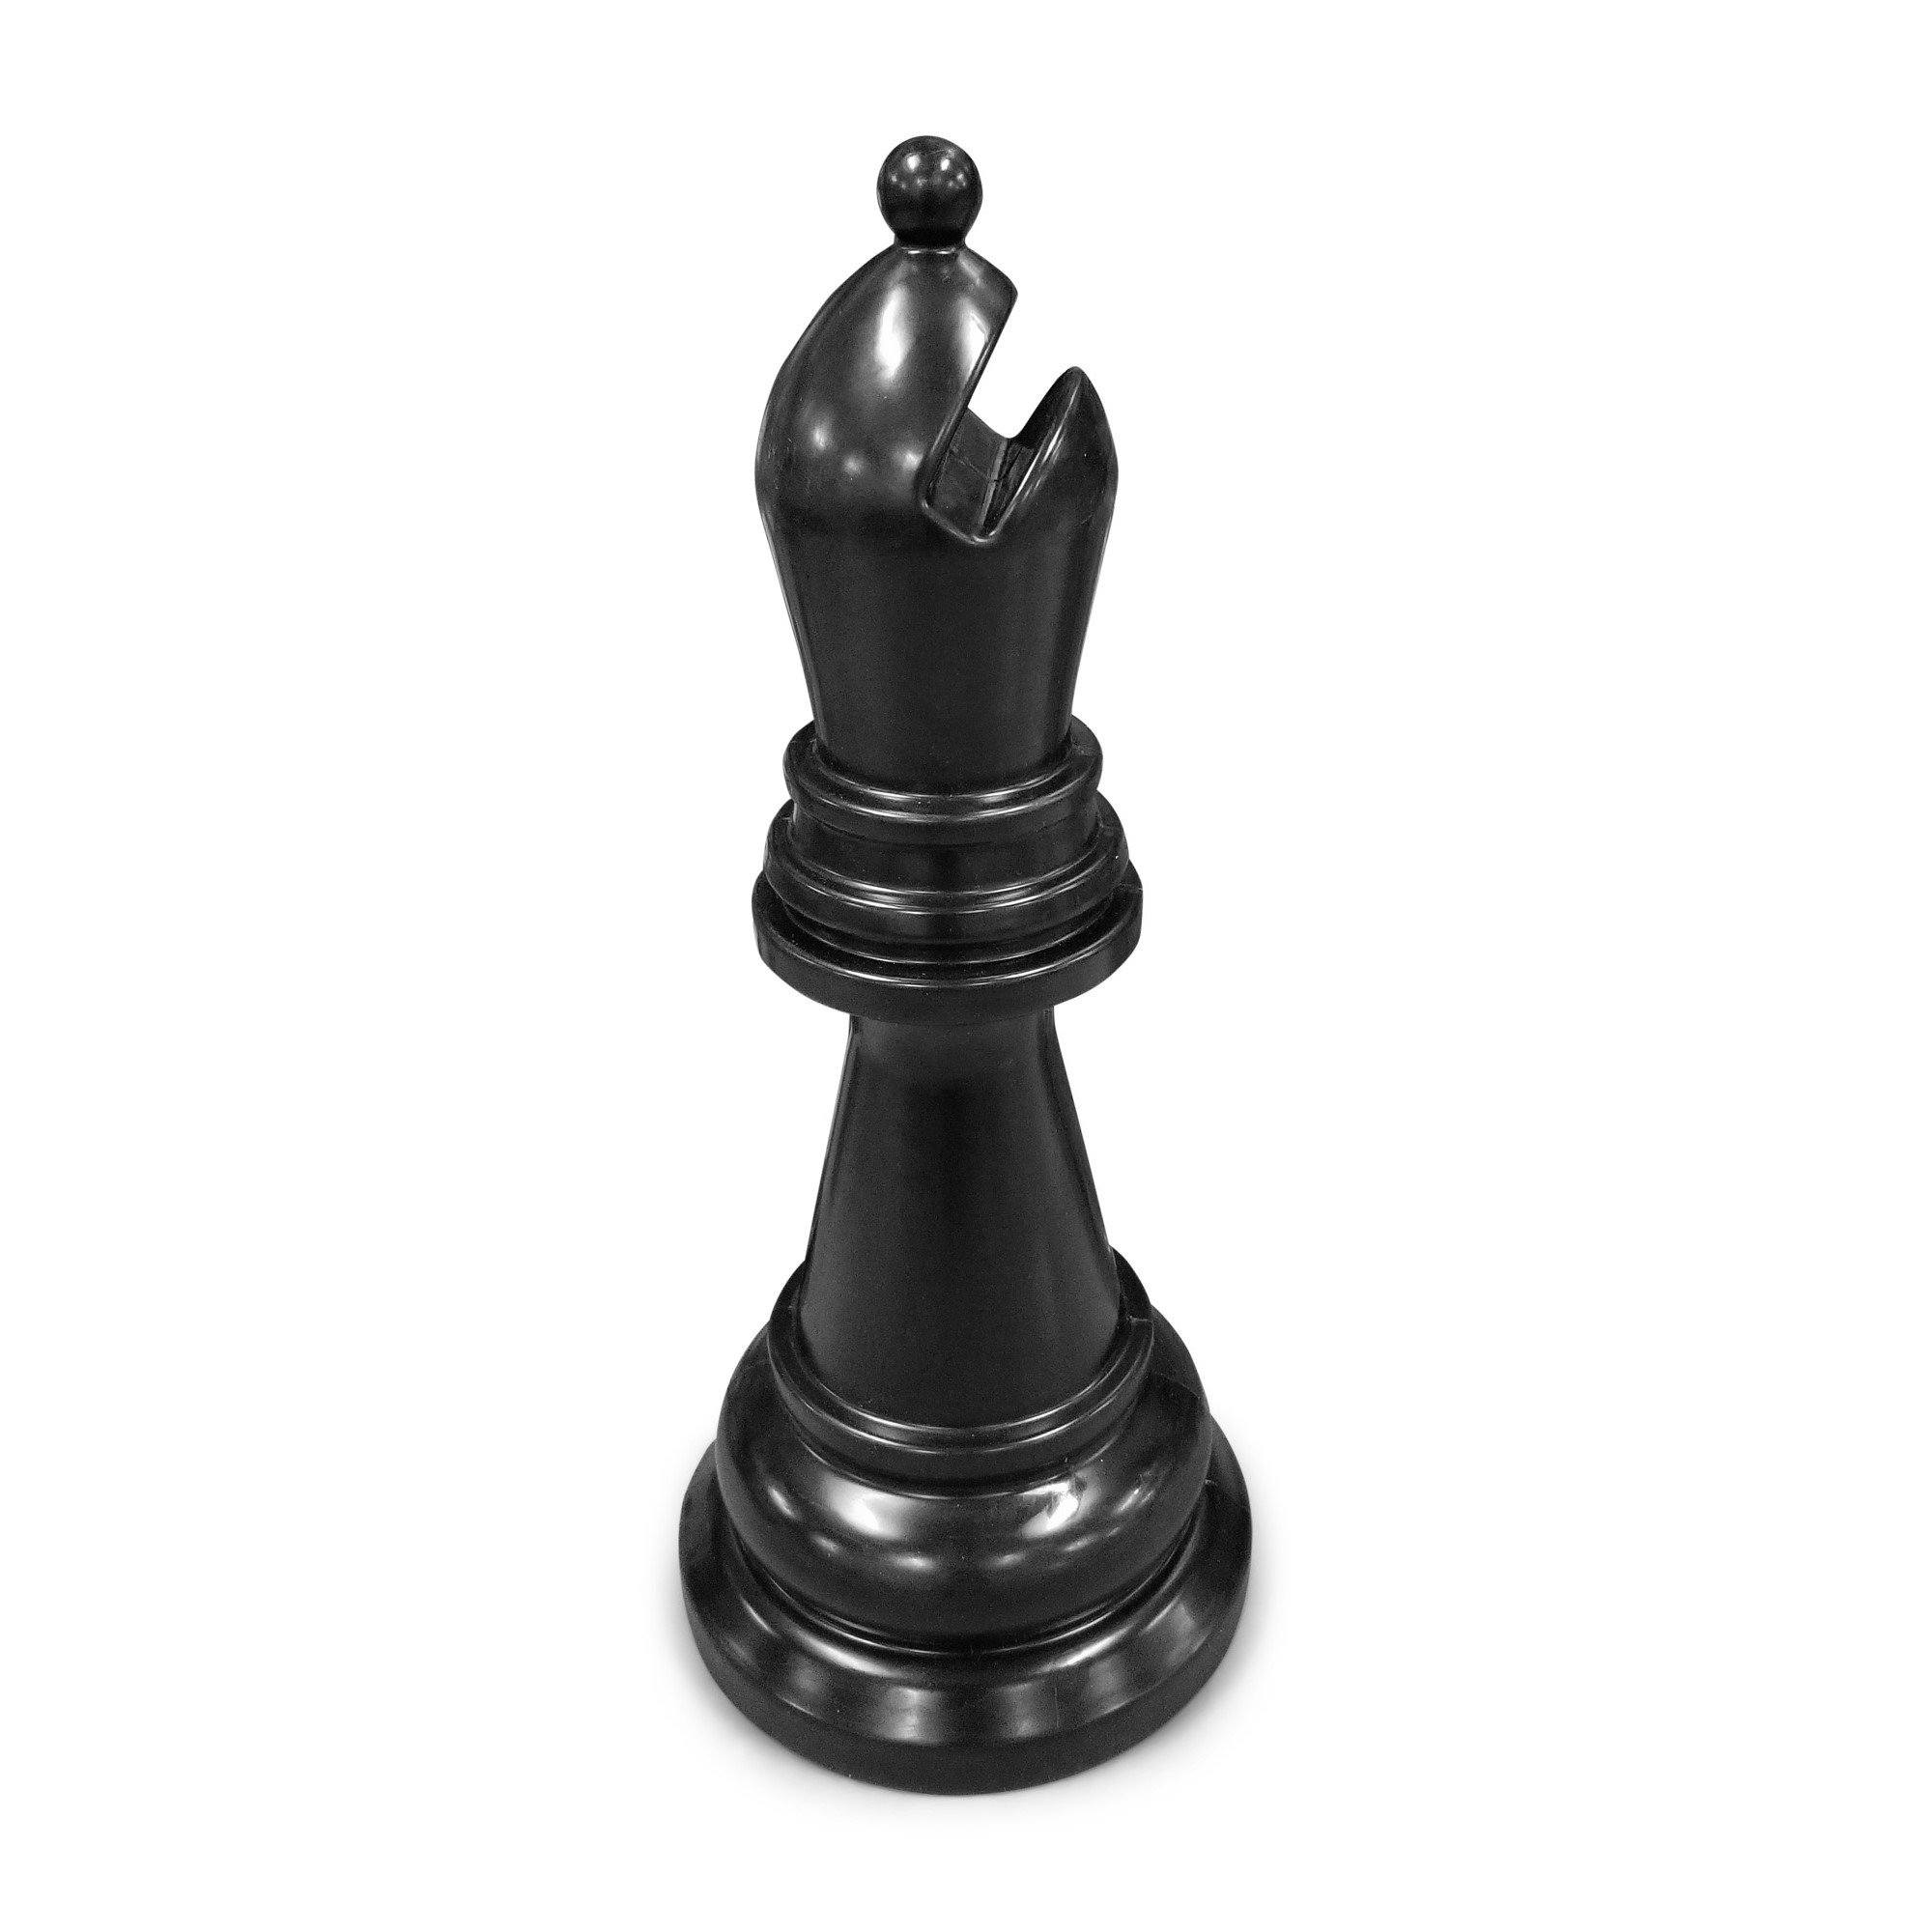 MegaChess 34 Inch Black Premium Plastic Bishop Giant Chess Piece | Default Title | MegaChess.com